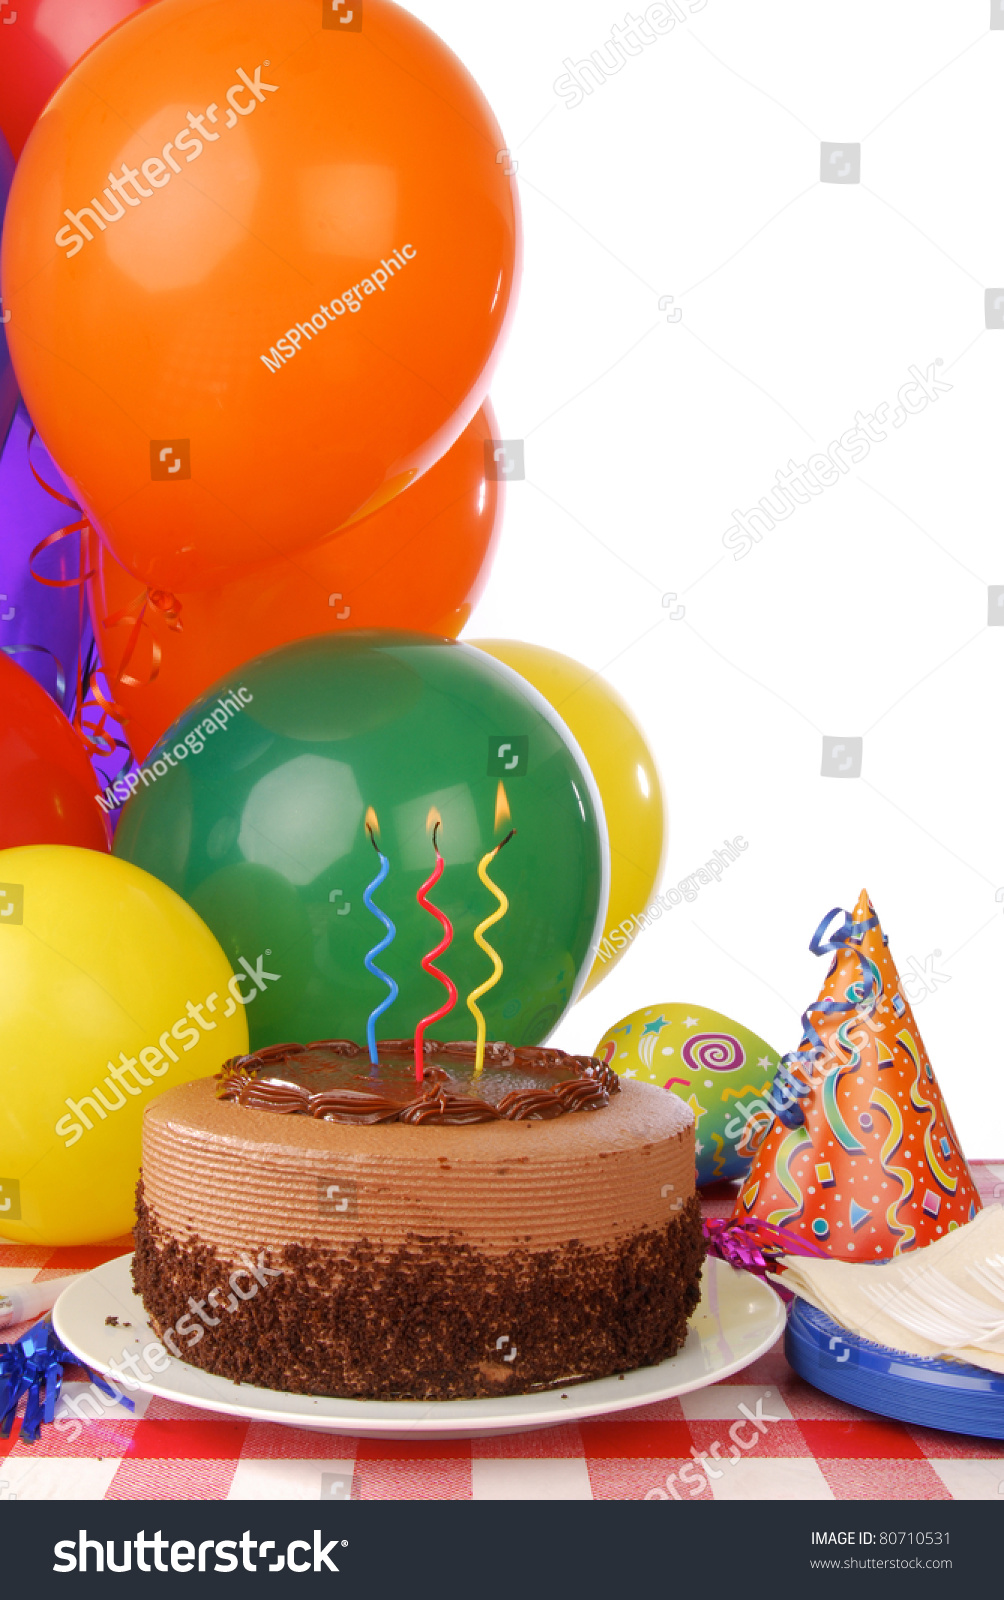 delicious chocolate birthday cake with candles and helium